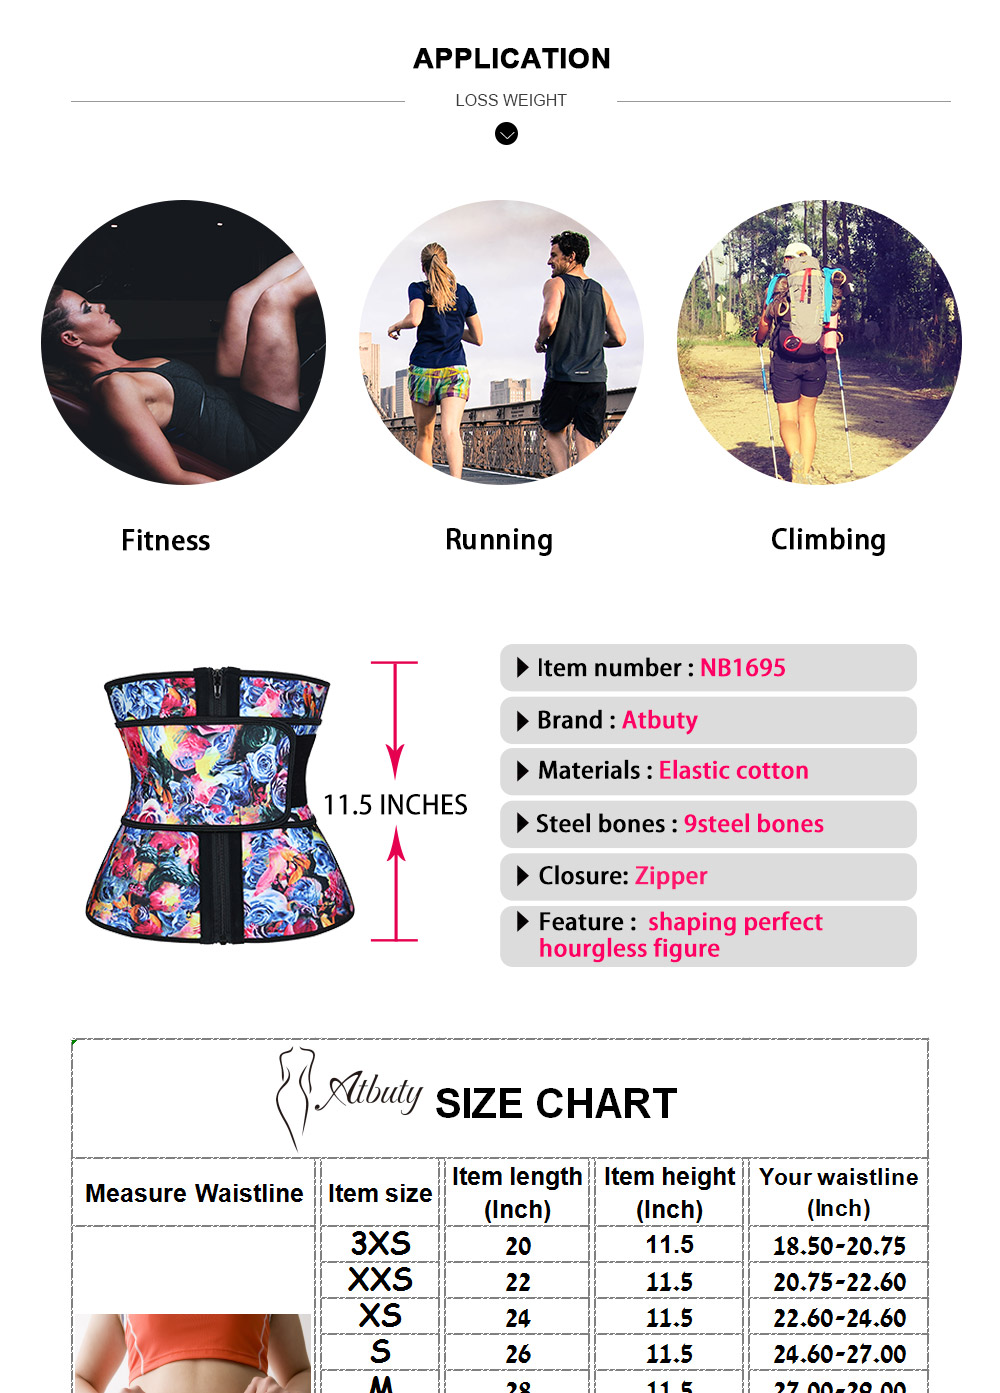 NB1695-2 Atbuty High Compression Waist Trainer Cincher Zipper Rose Printing Tummy Lose Weight Latex Body Shapers Corsets (4)